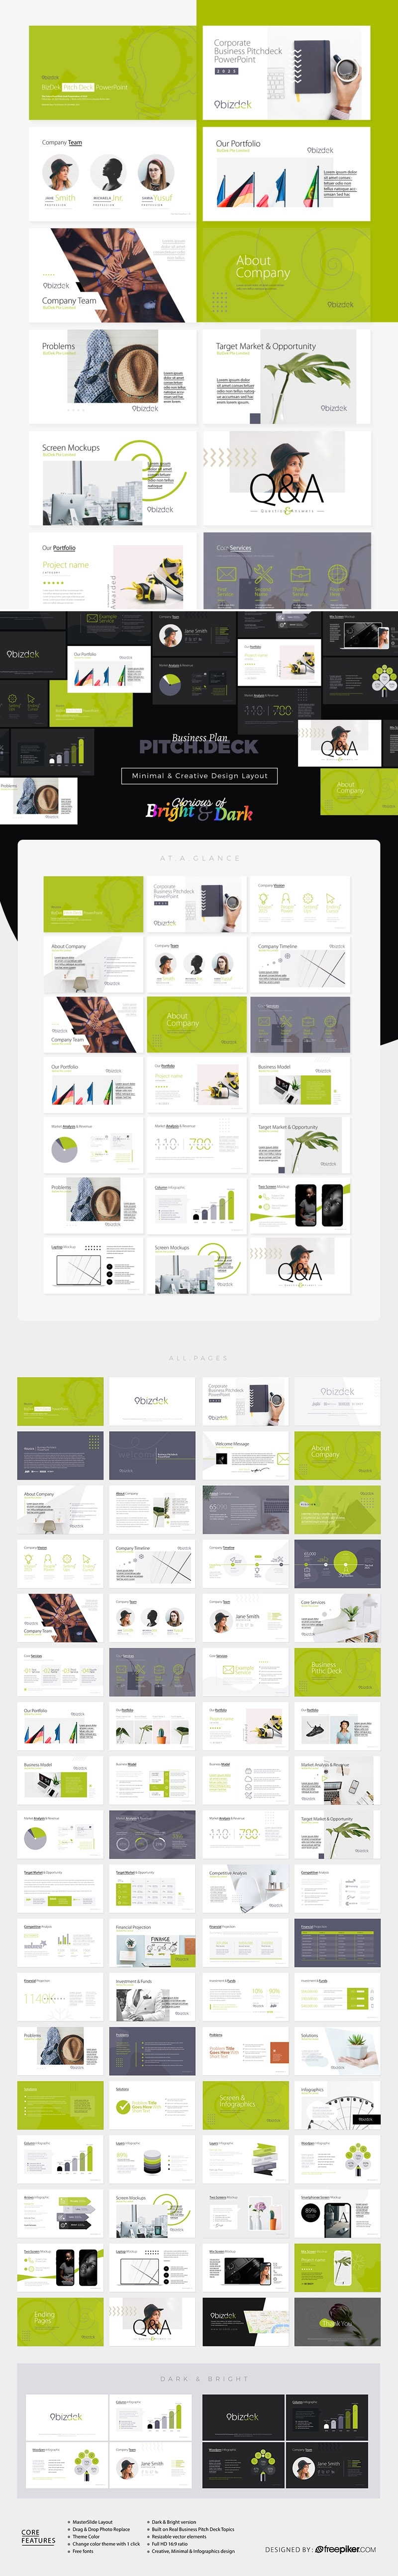 BizDek | Business Plan Pitch Deck Keynote Presentation Template